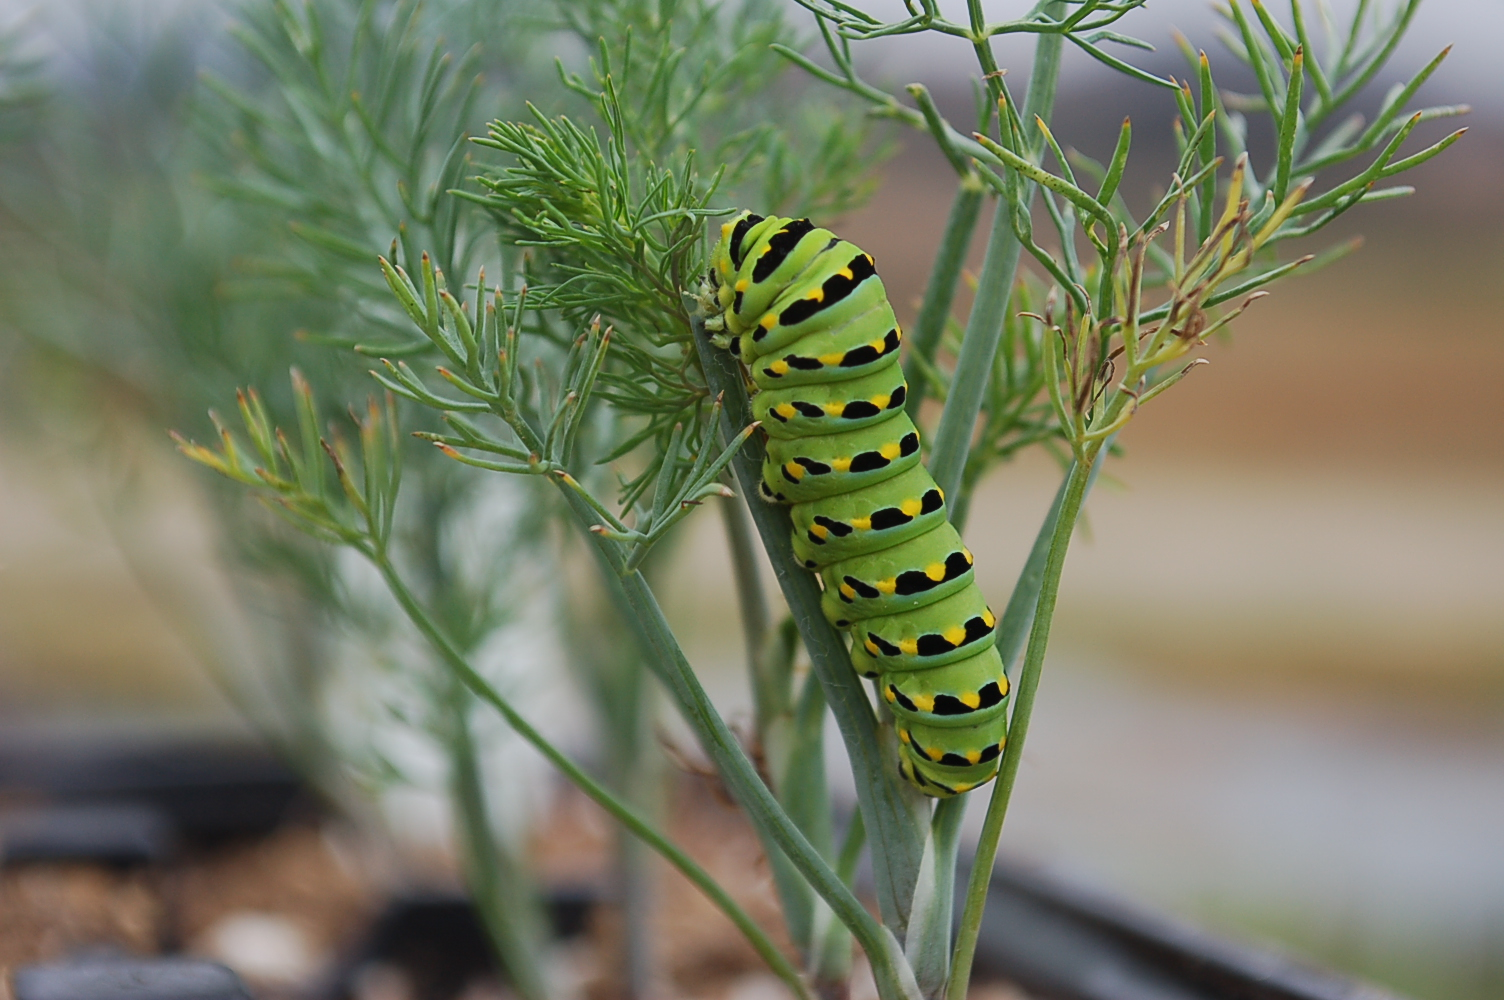 Yellowtail caterpillar on Dill